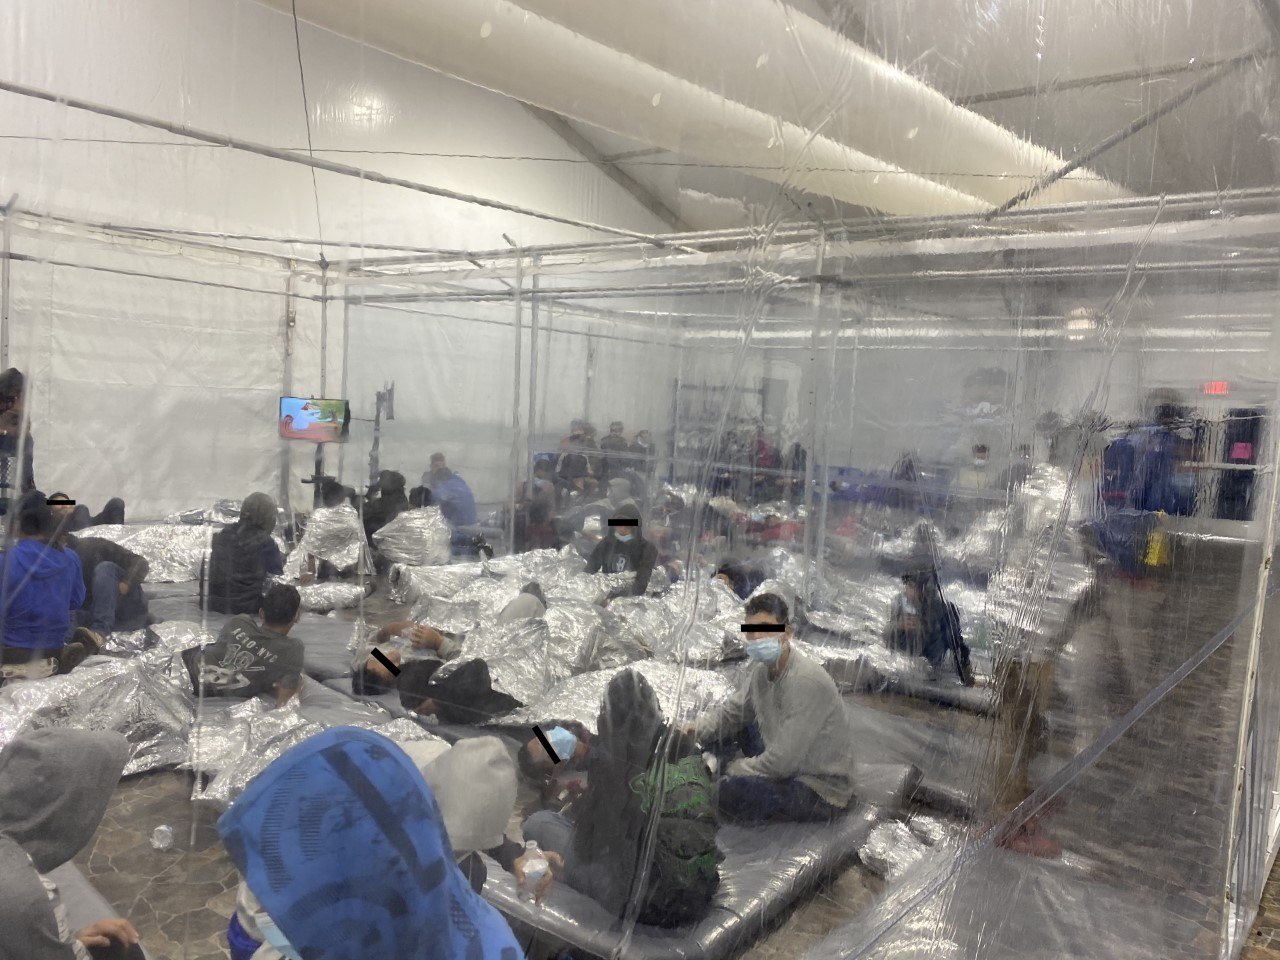 Migrants sleep under mylar blankets inside the U.S. Customs and Border Protection processing facility in Donna, Texas. (Courtesy photo by U.S. Rep. Henry Cuellar)